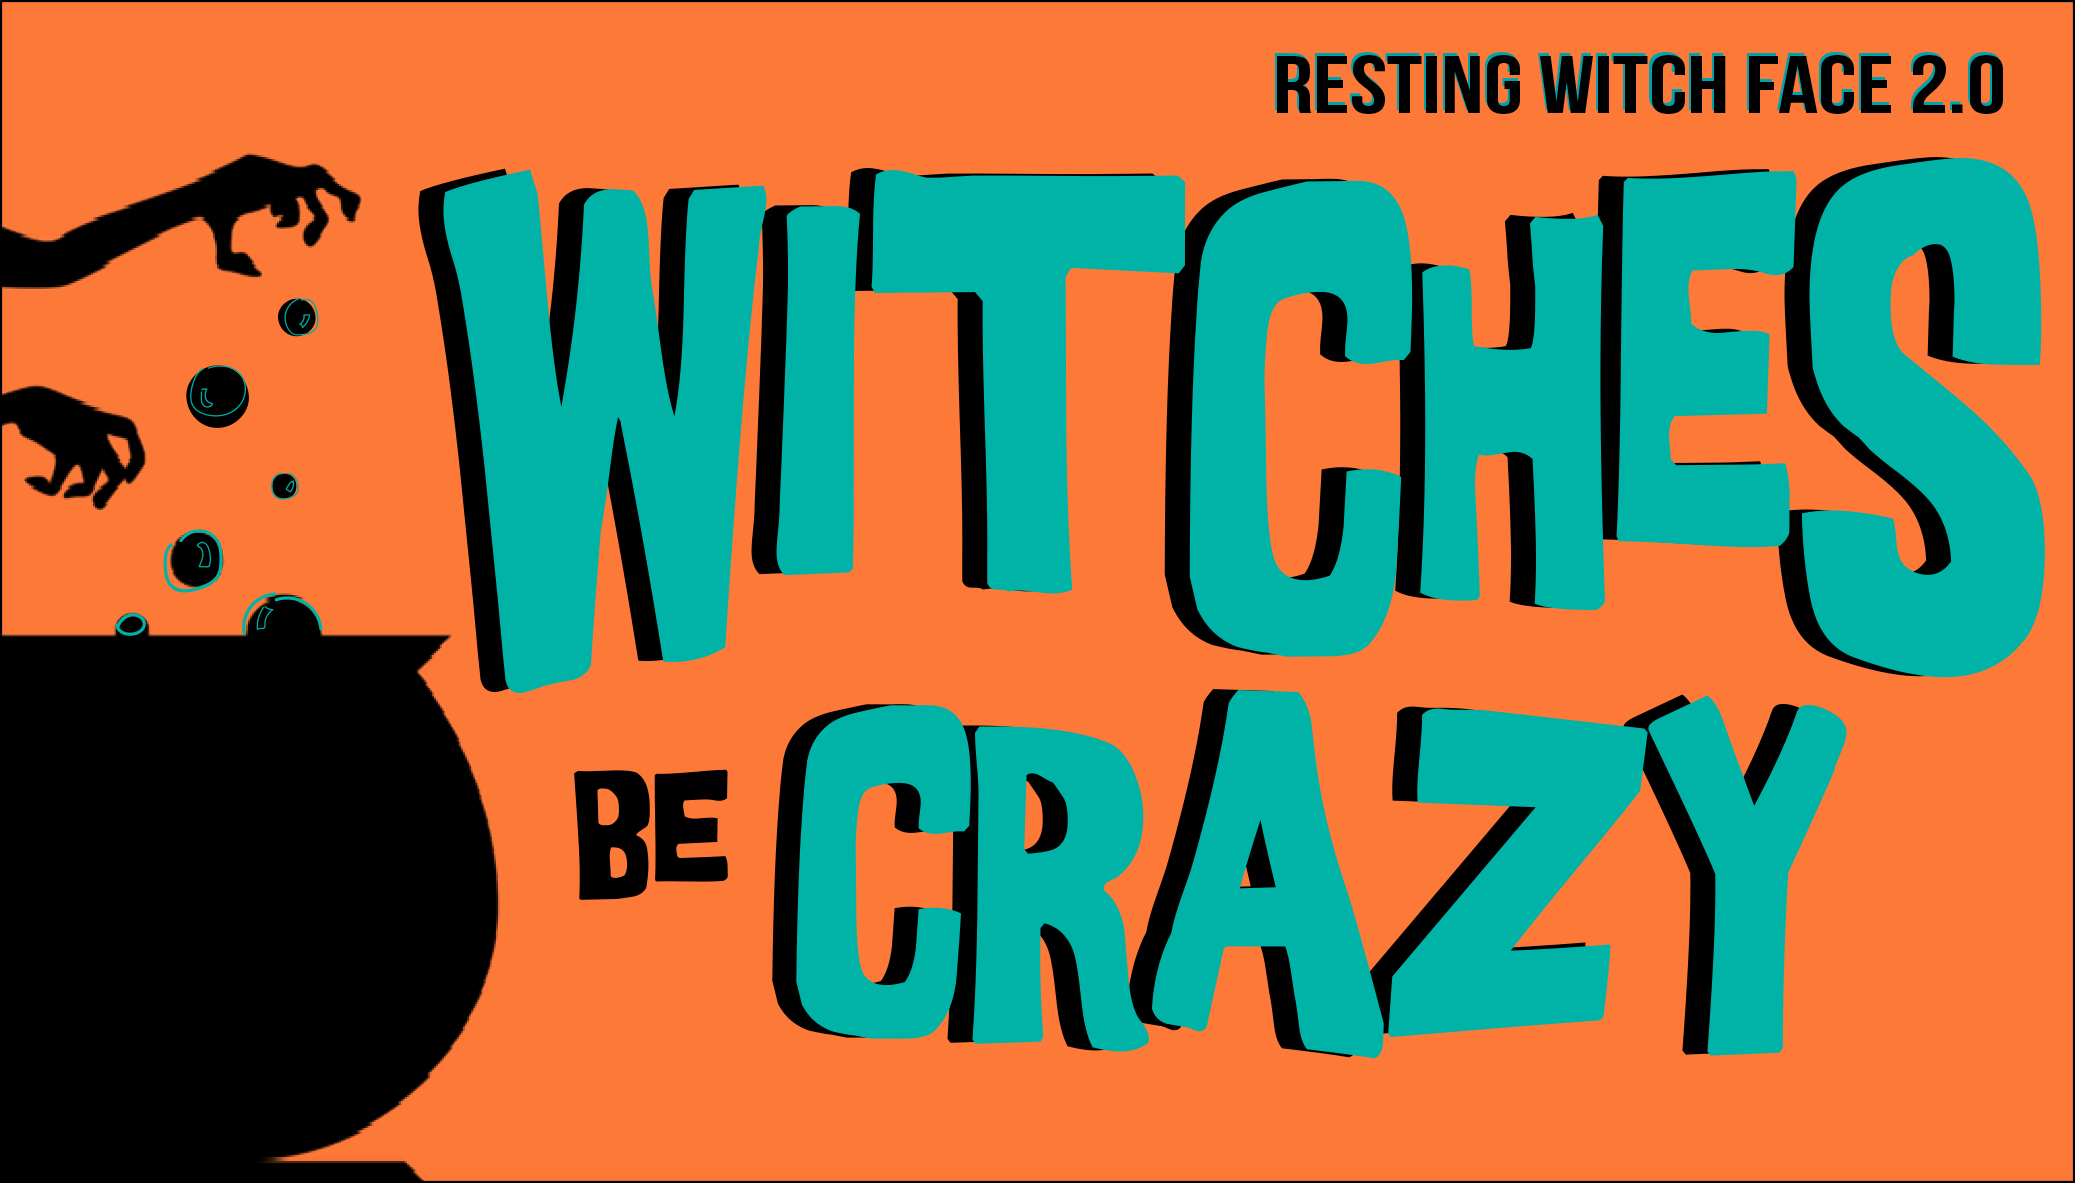 Resting Witch Face 2.0: Witches Be Crazy